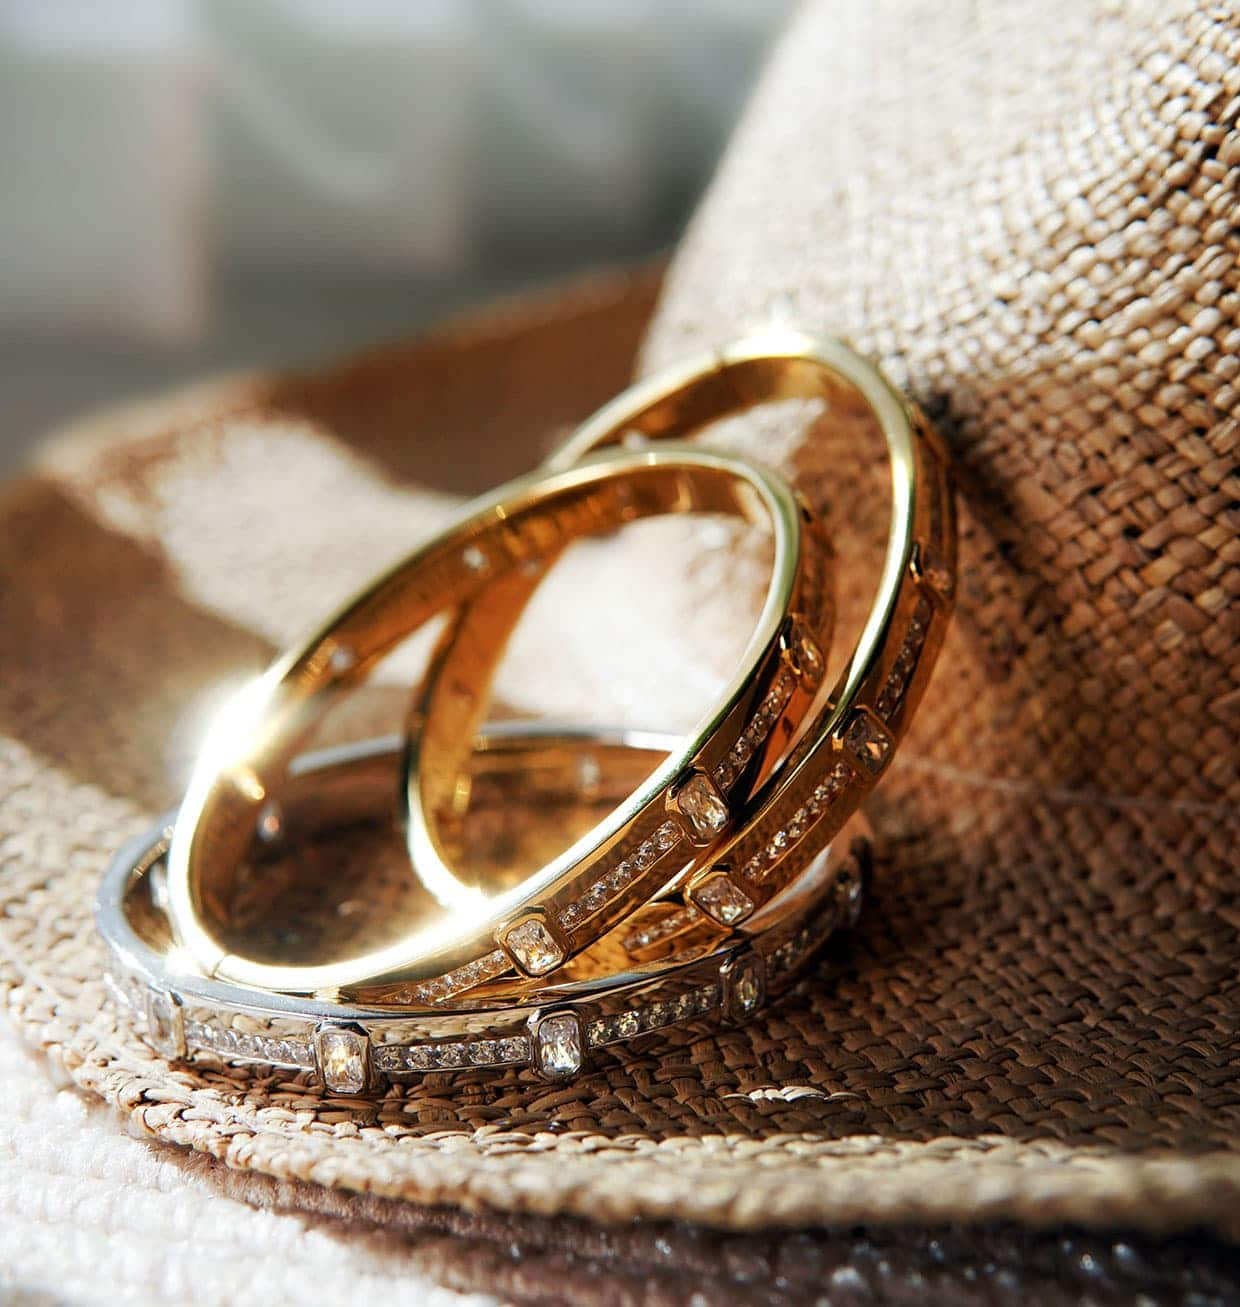 Abelstedt bangles stacked on a hat